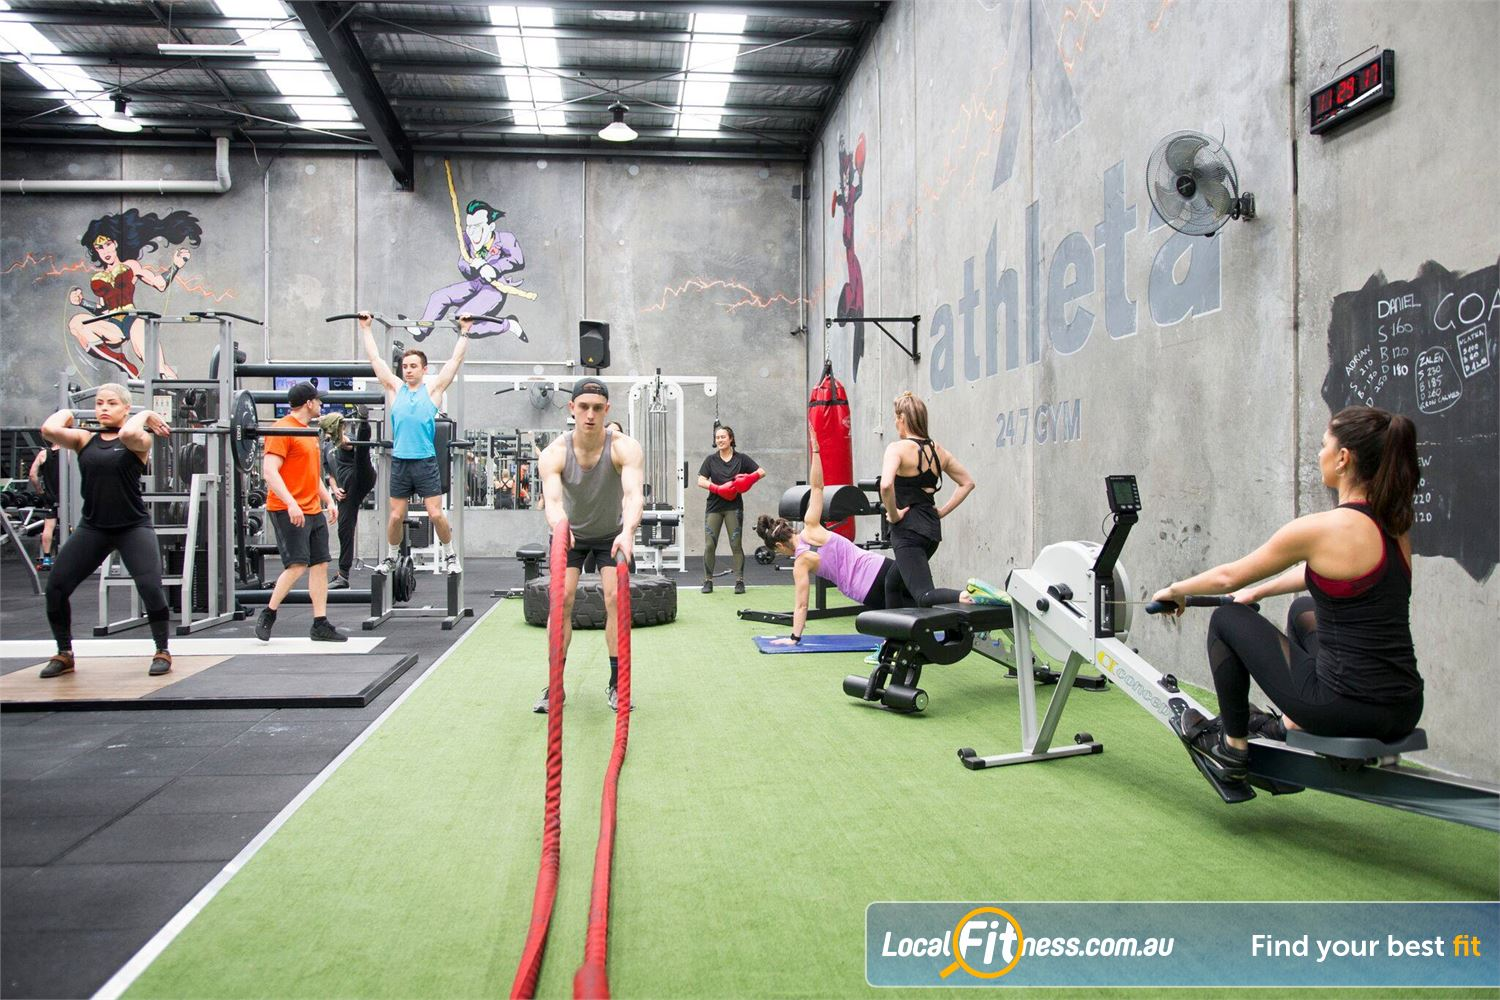 Athleta Gym Near Williamstown Get into functional training in our  Williamstown HIIT gym.